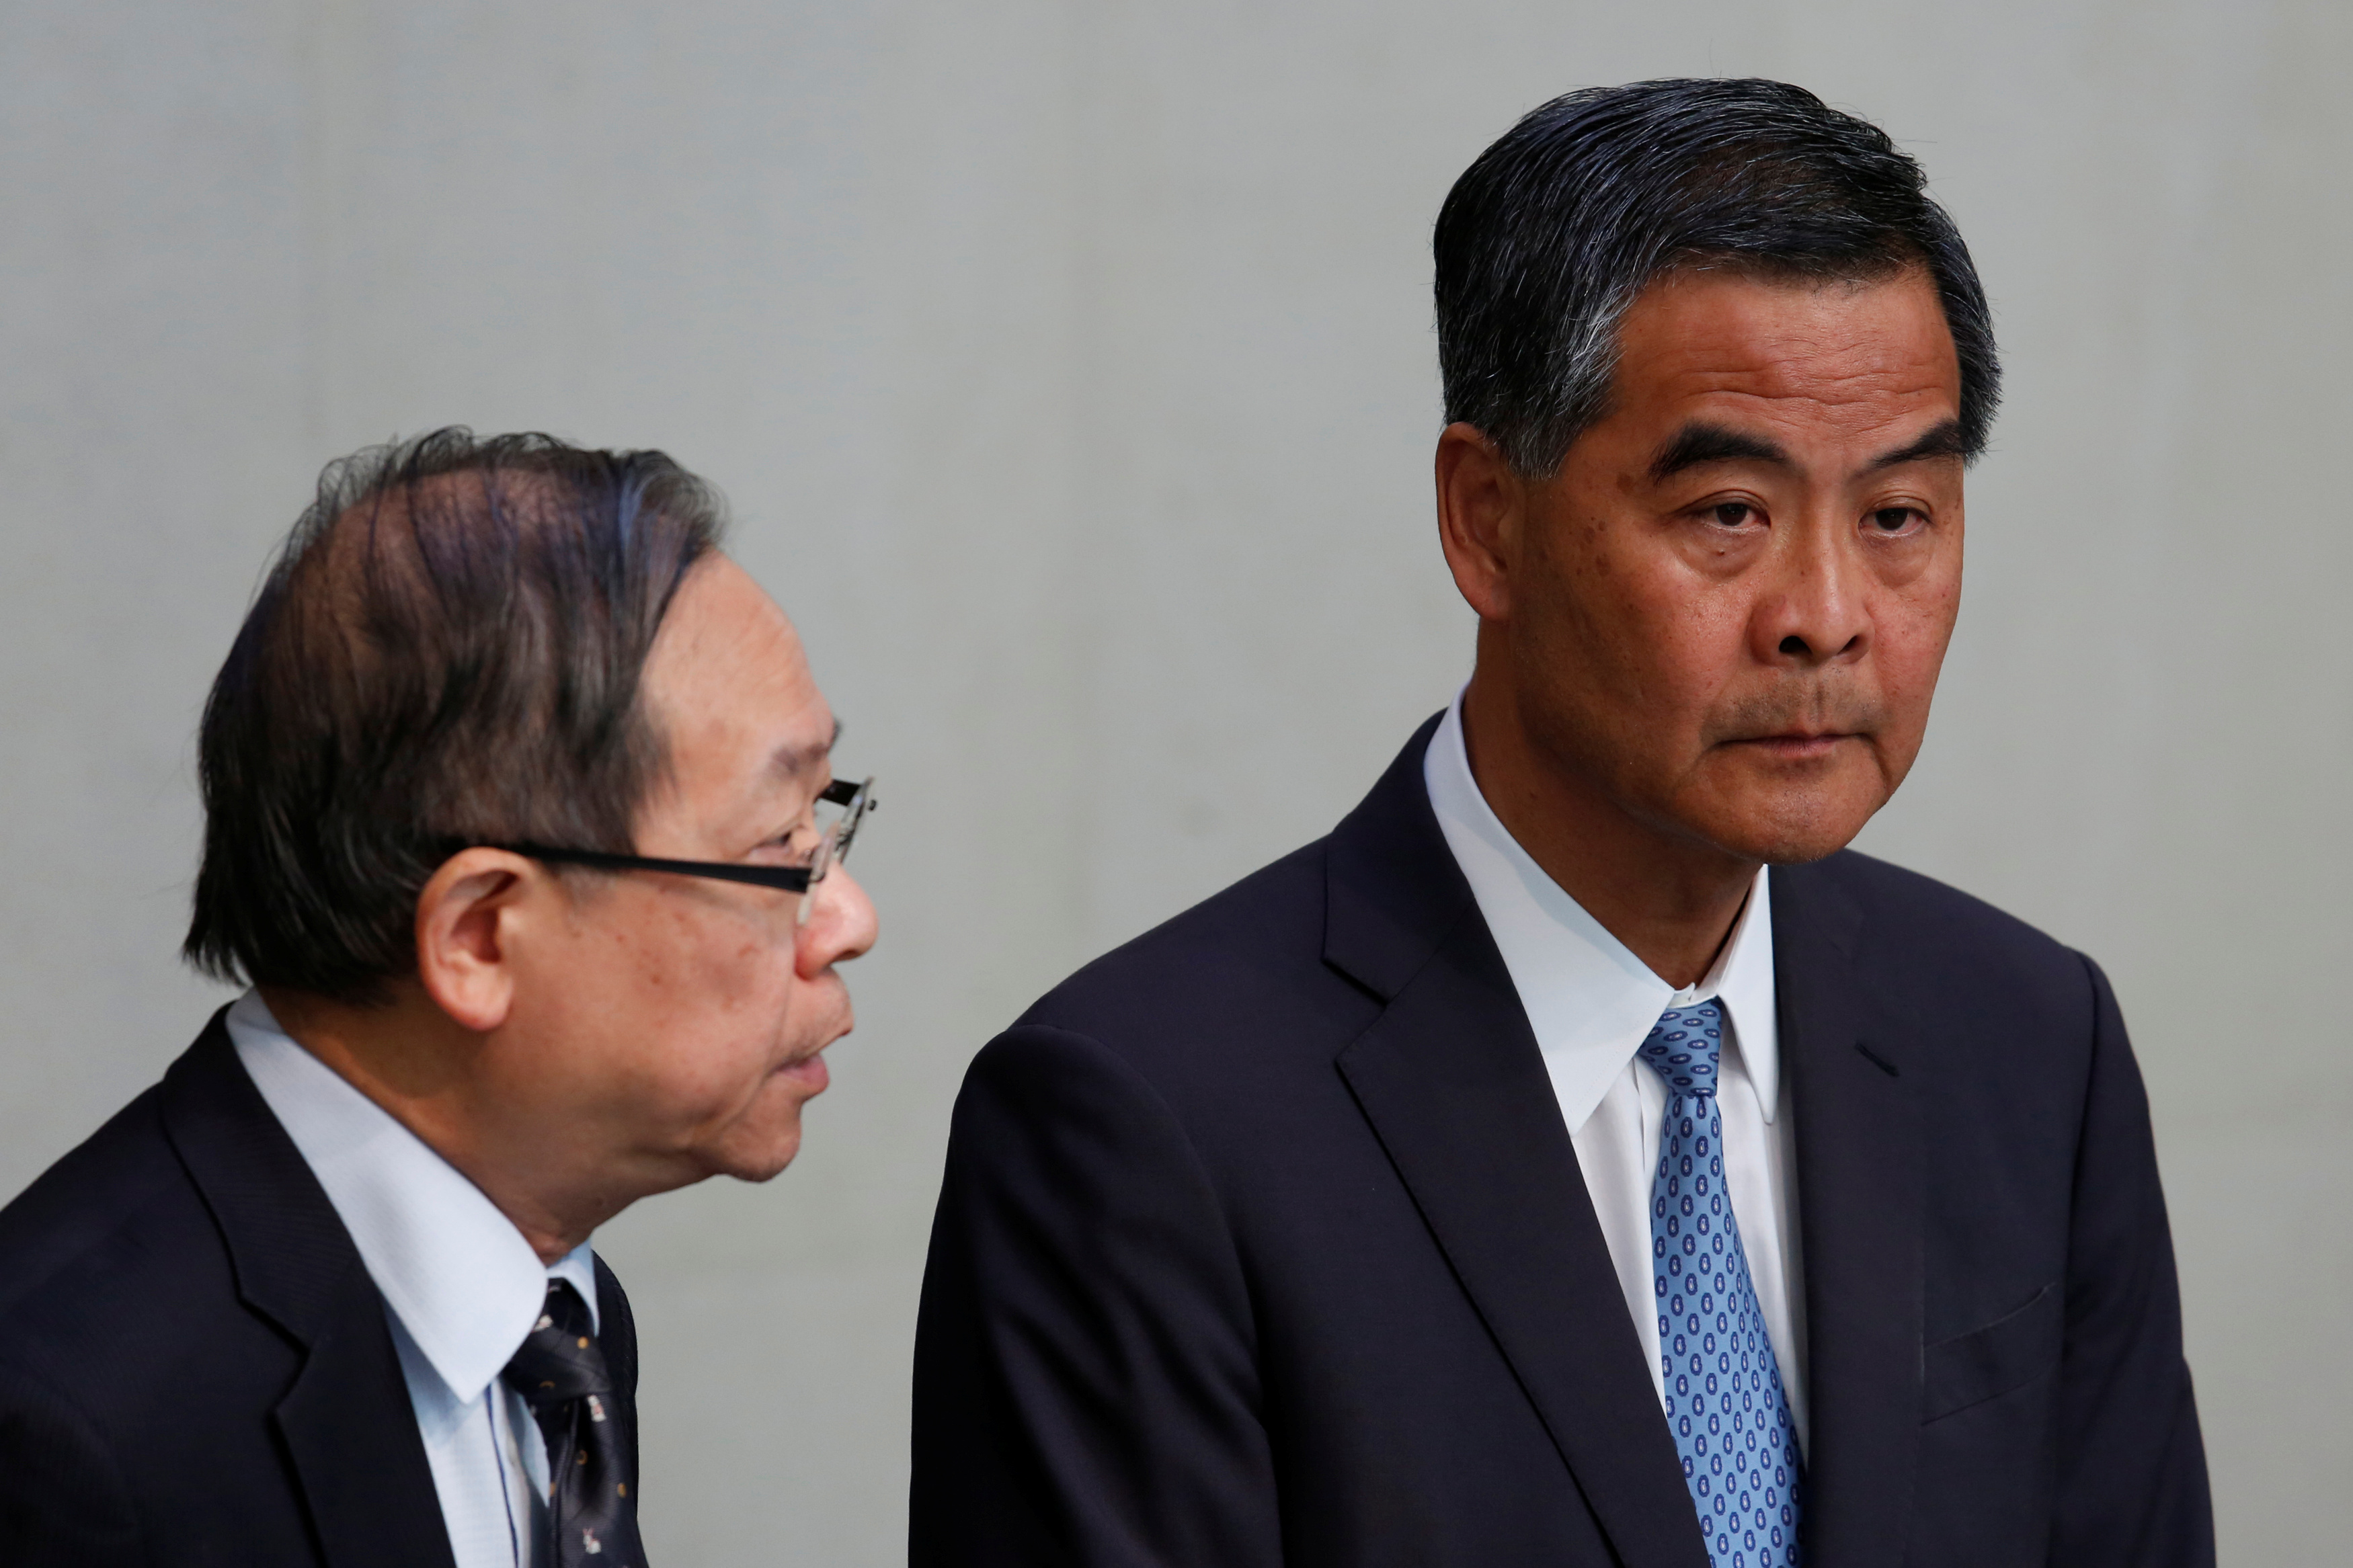 Hong Kong Chief Executive Leung Chun-ying, right, and Secretary for Security Lai Tung-kwok hold a news conference in Hong Kong on June 20, 2016